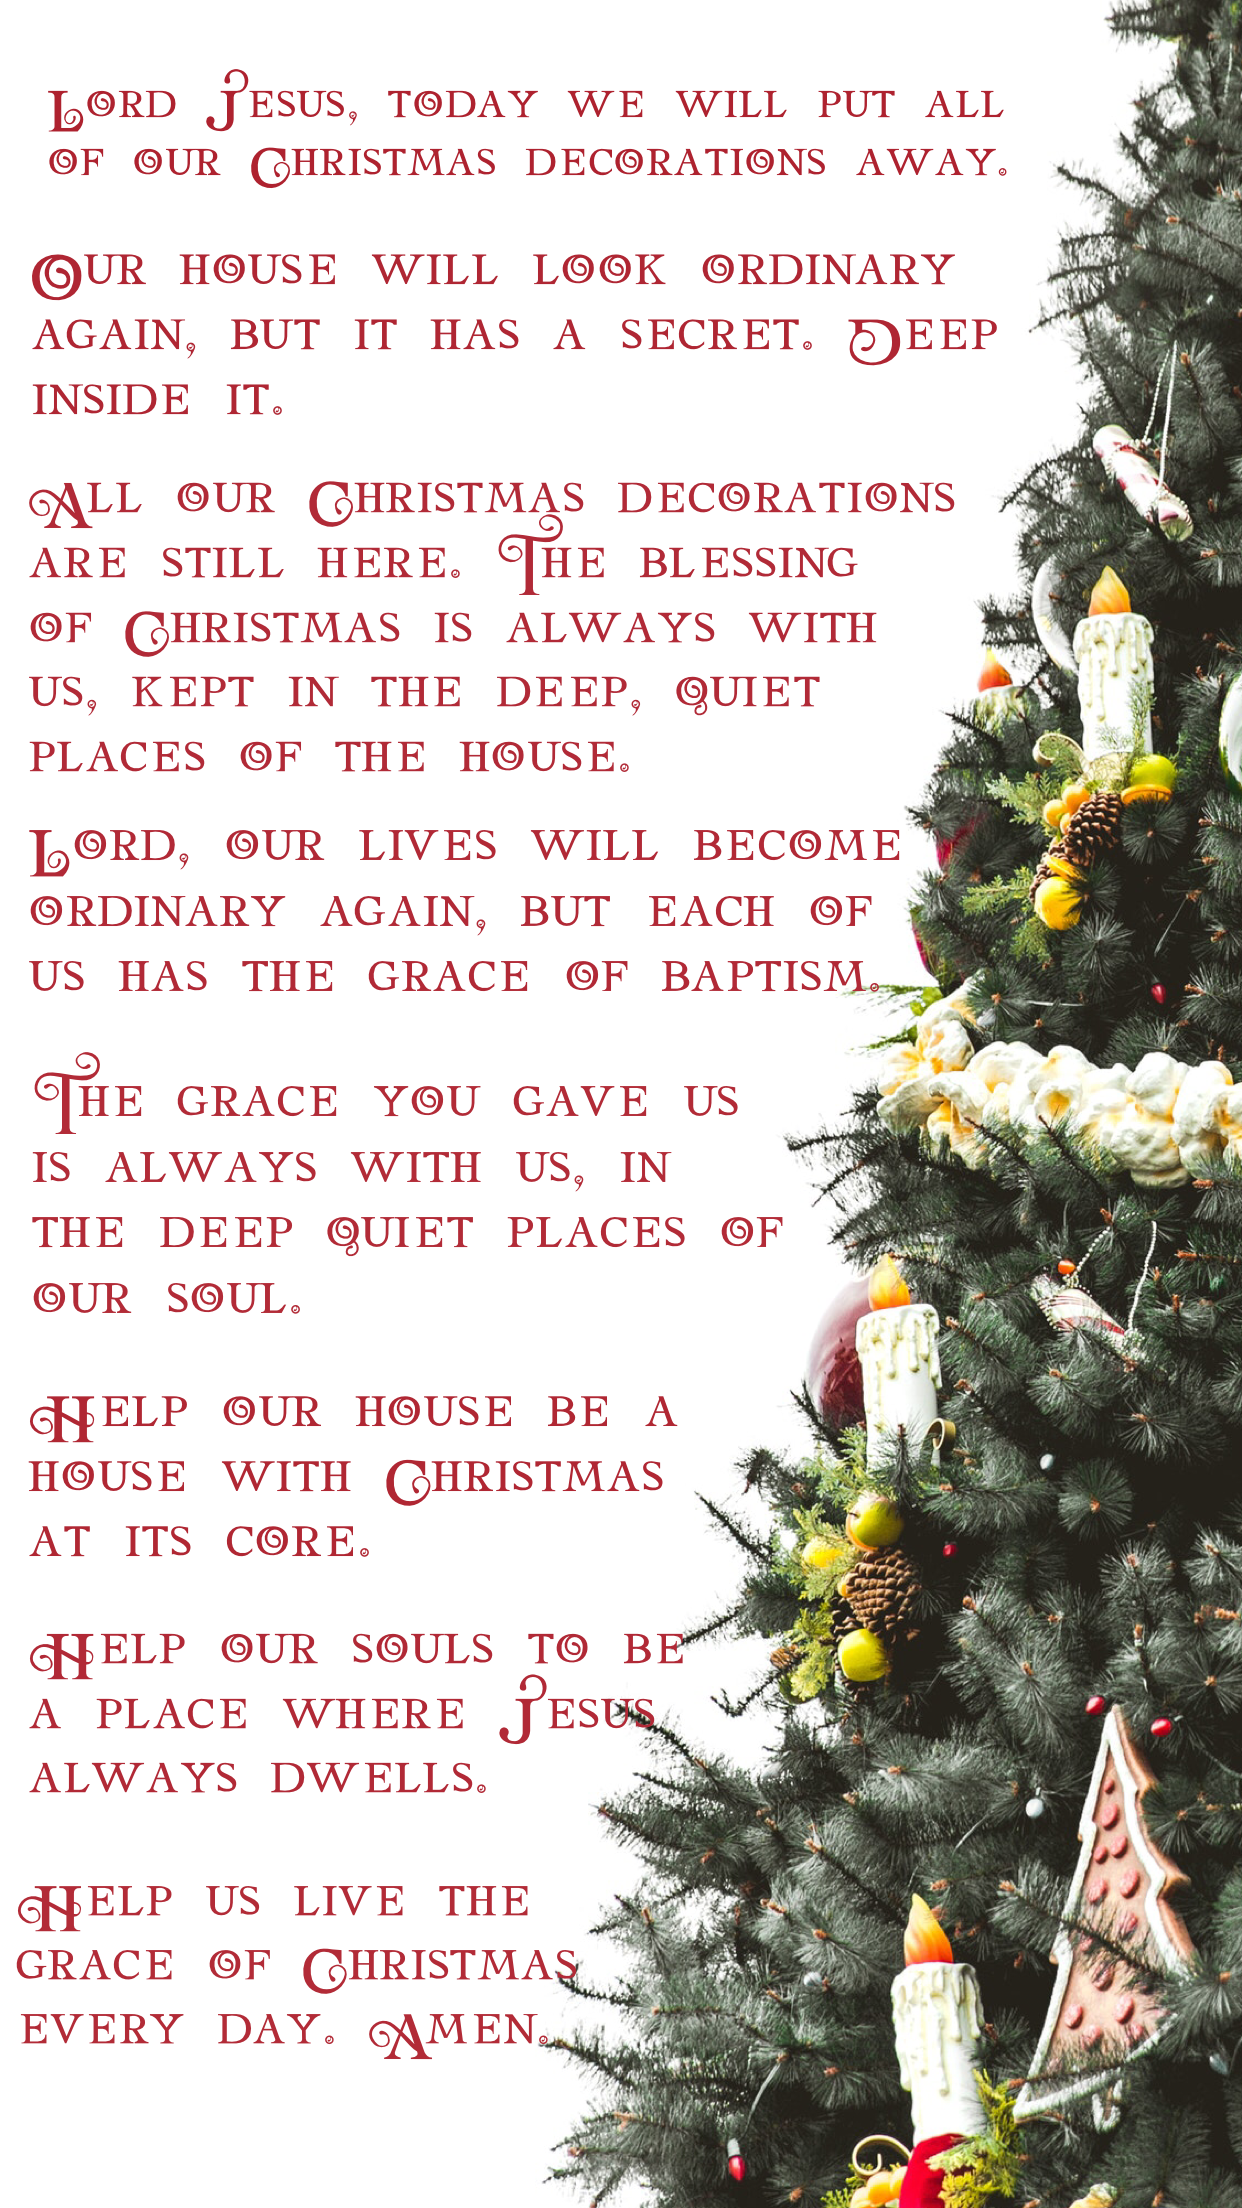 Christmas Blessing Prayer.Prayer For Taking Down Christmas Decorations Candlemas